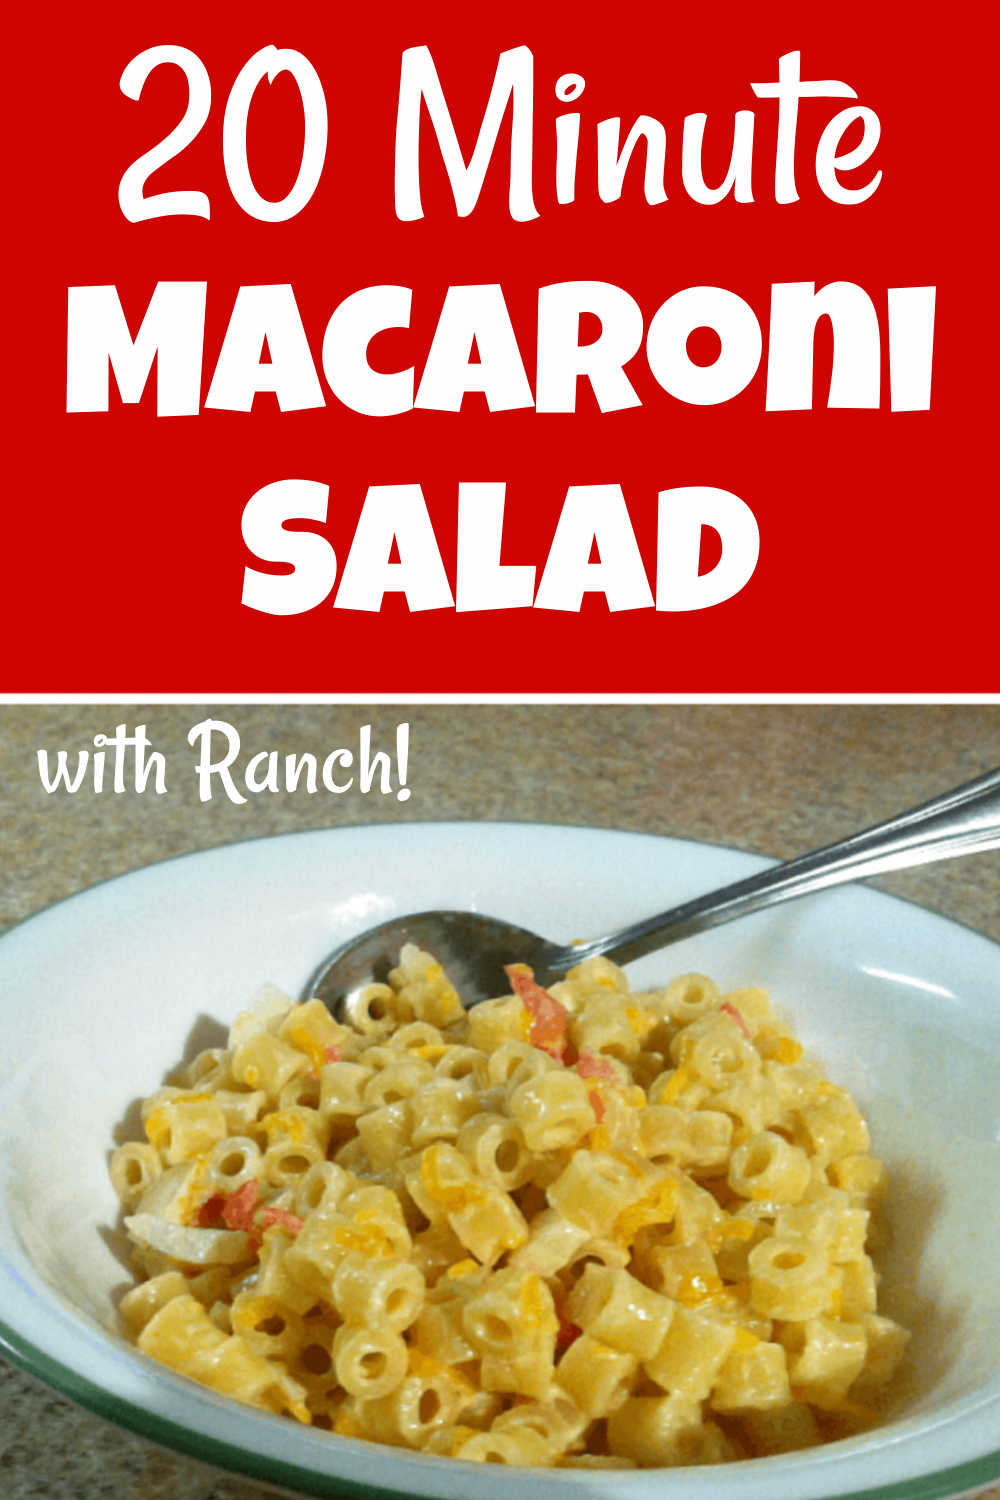 Super Easy and Cheesy Macaroni Salad {20 Minutes}